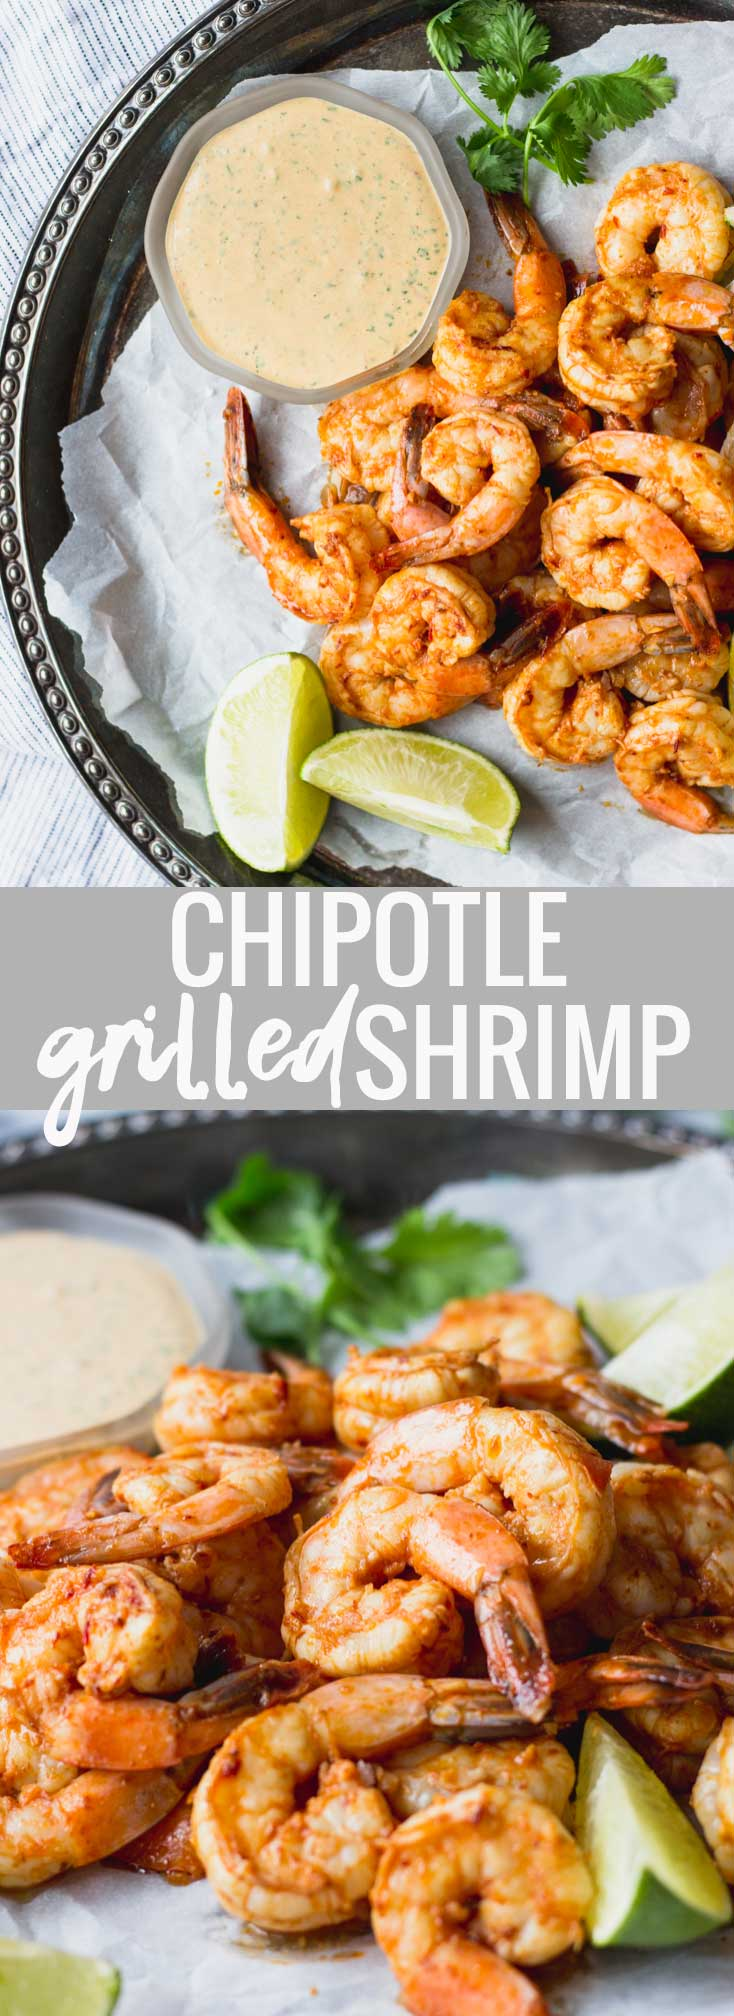 Chipotle Grilled Shrimp | Fork in the Kitchen